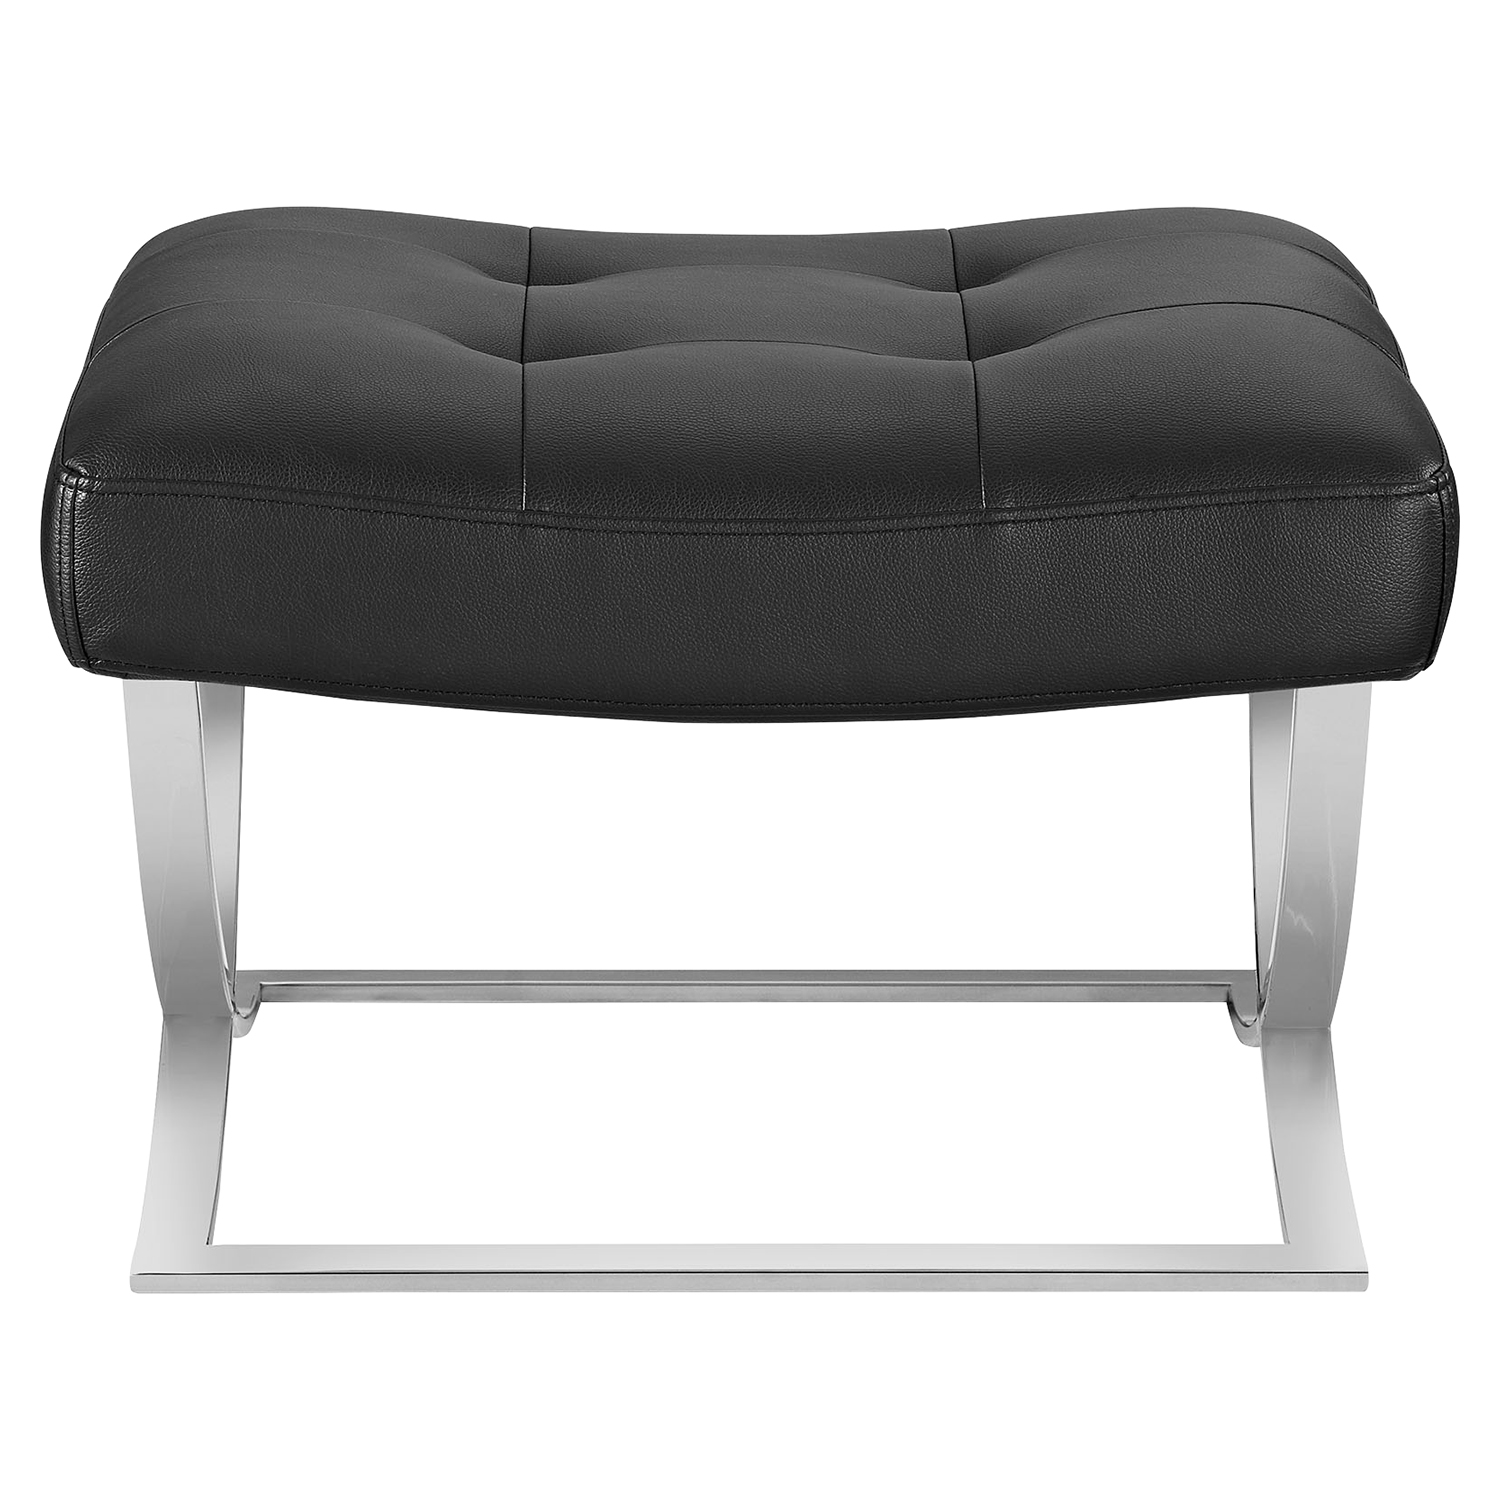 Slope Leatherette Ottoman - Tufted, Black - EEI-2078-BLK